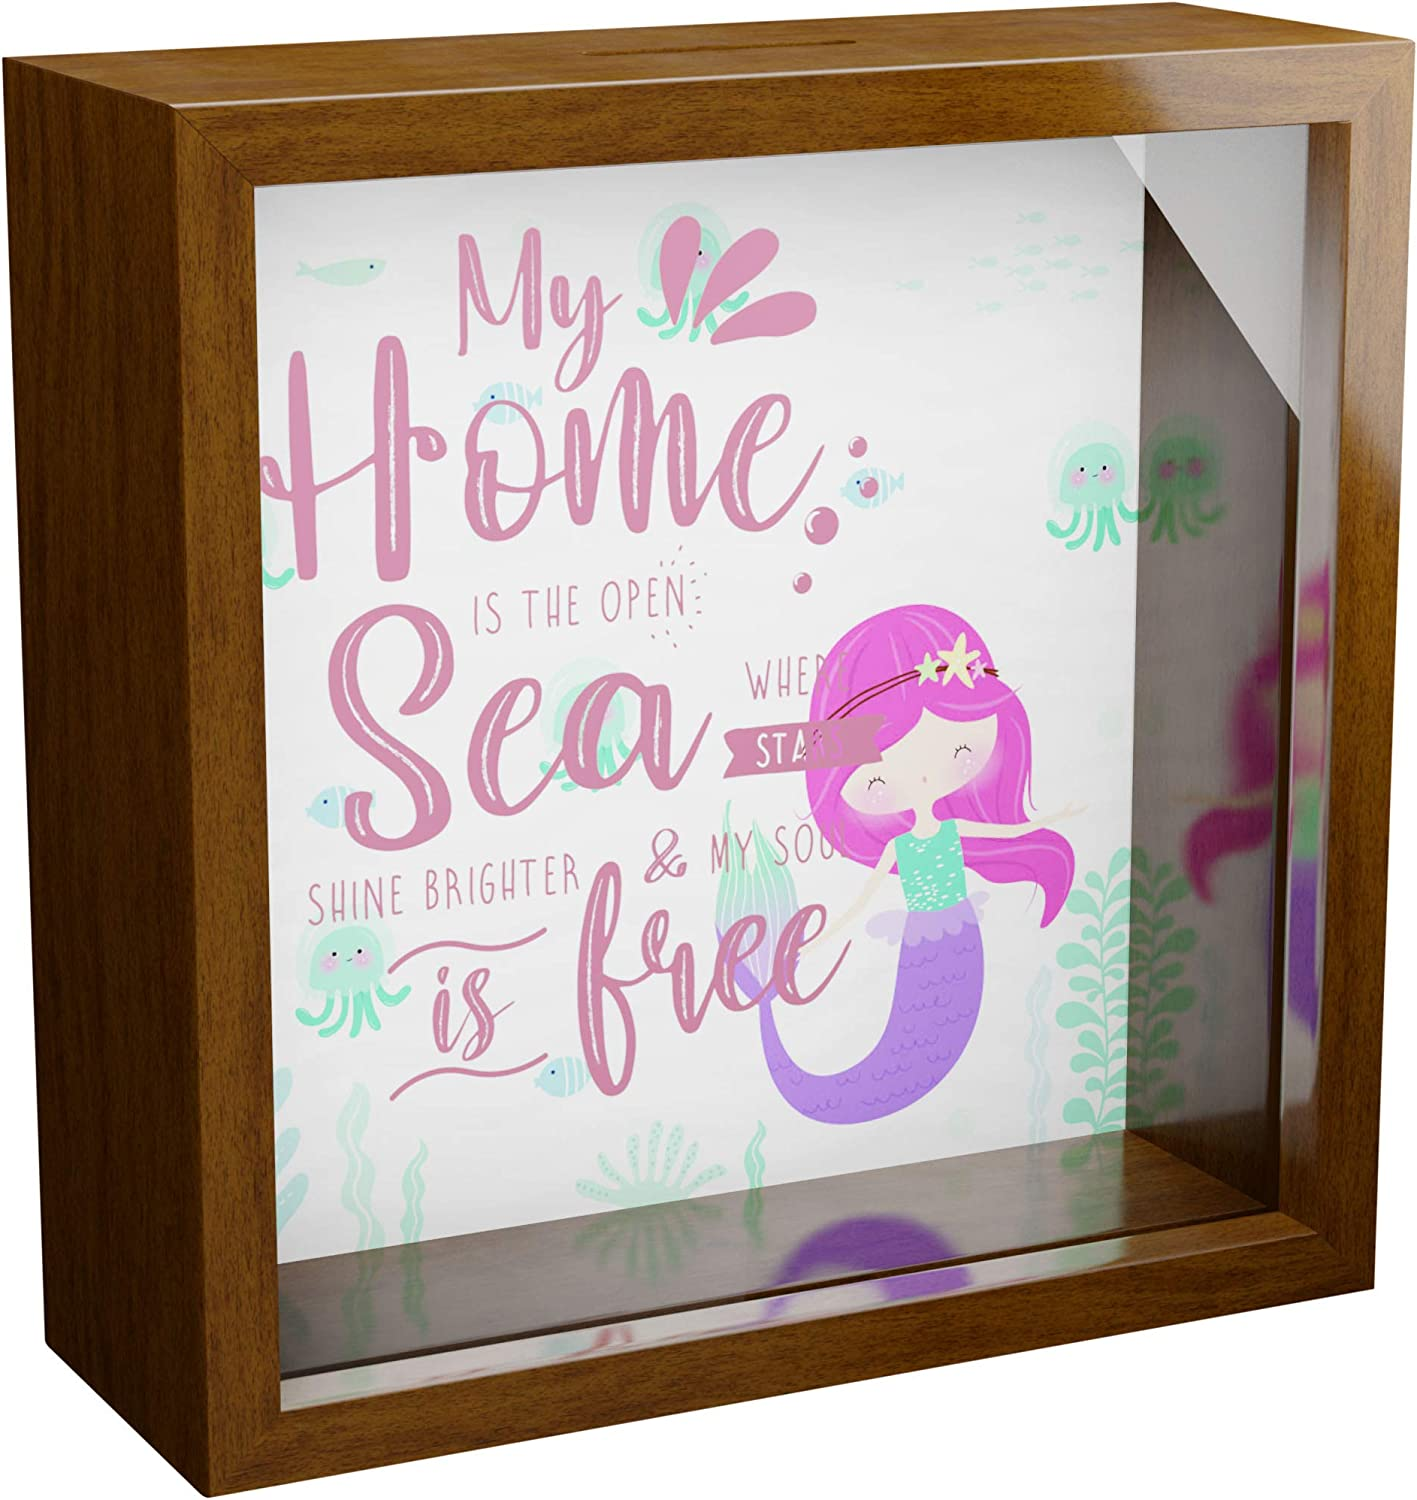 Mermaid Wall Decor Gifts | 6x6x2 Glass Fronted Shadow Box | Wooden Keepsake Box for Mermaids Lover | Great as Room, Bedroom or Home Decorations | Special Display Case for Girls and Women